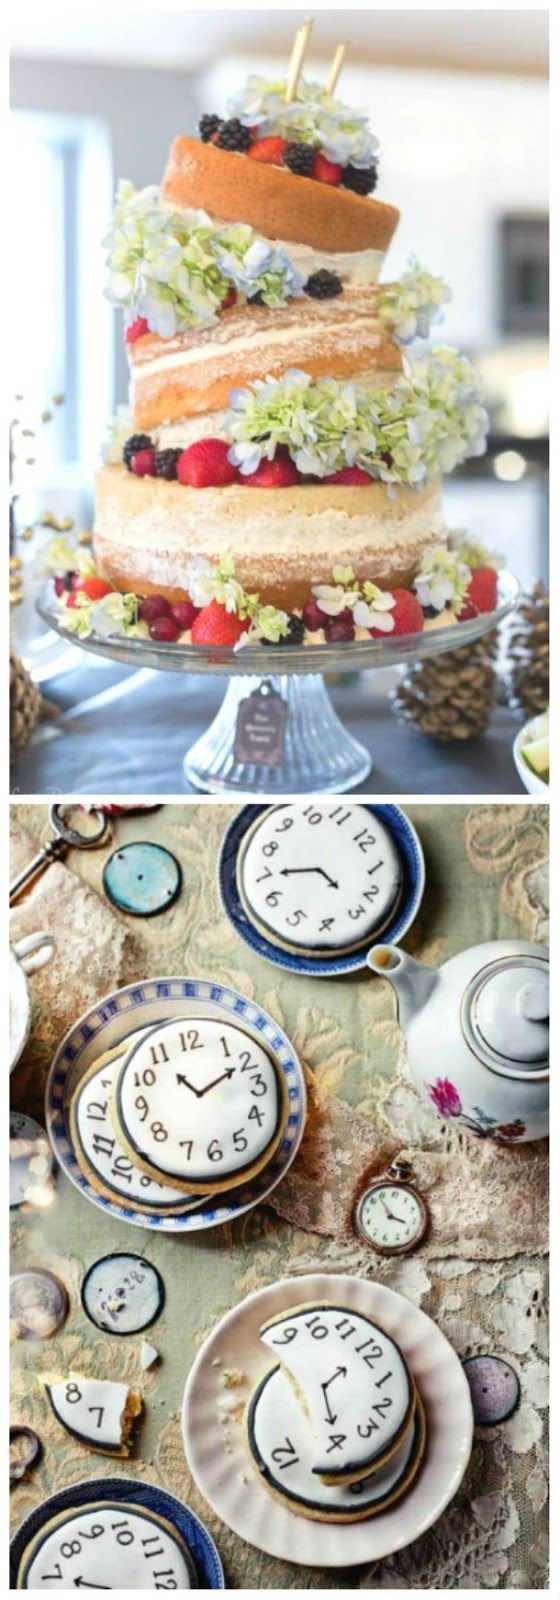 My inspiration? Tea party decor, of course! Lots of pretty vintage tea cups, fancy petitfours, roses, clocks, hats, bunnies and more!